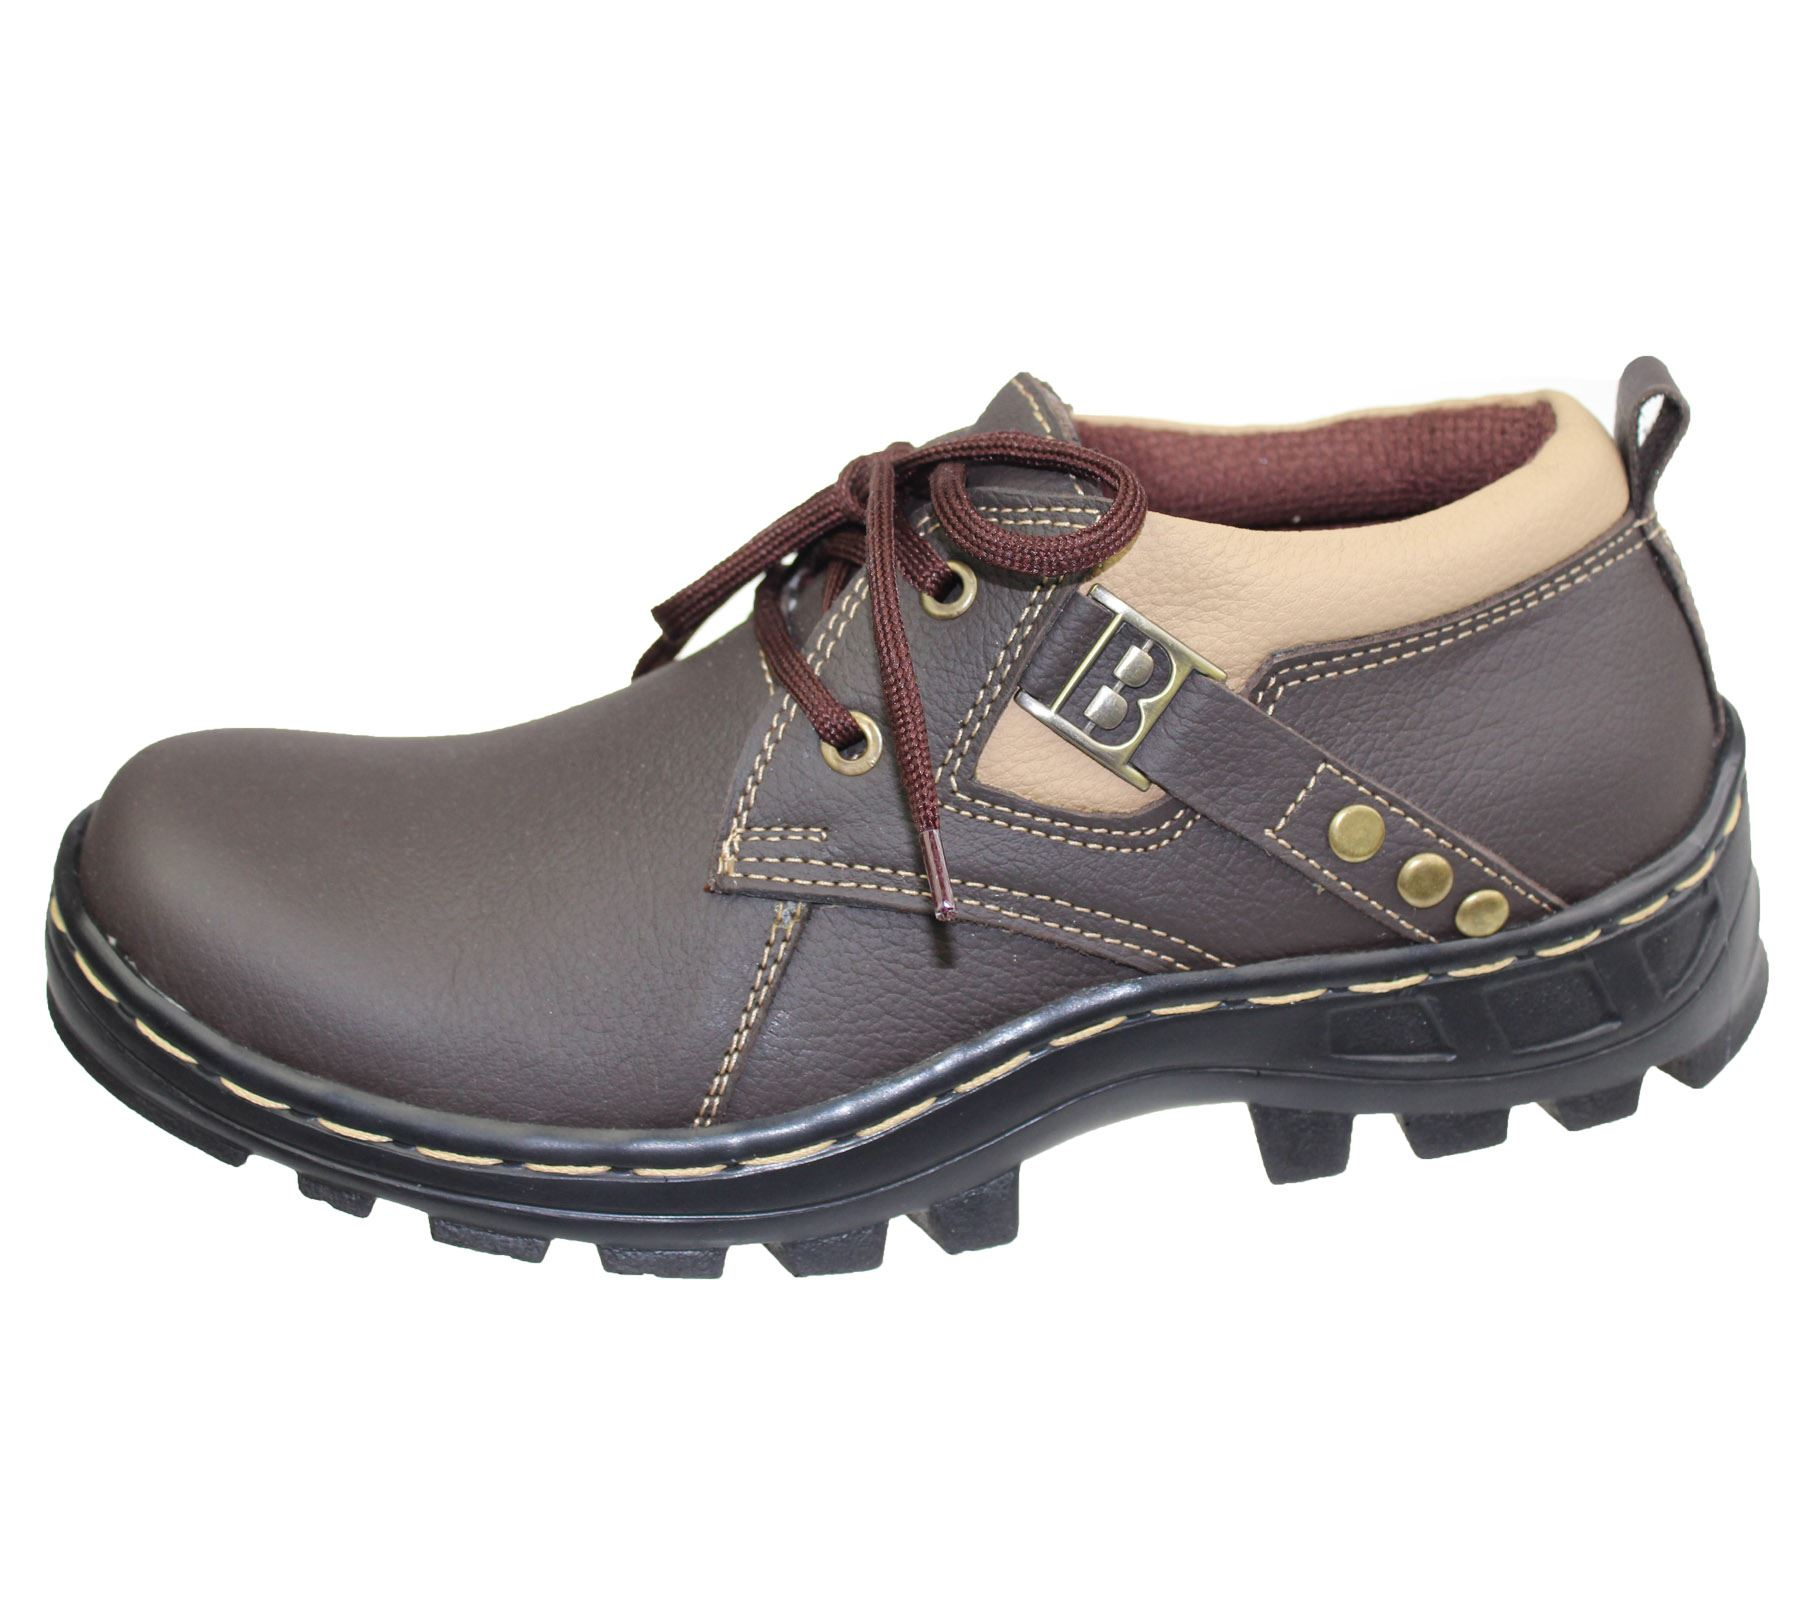 boys lace up shoes work casual comfort boots hiking